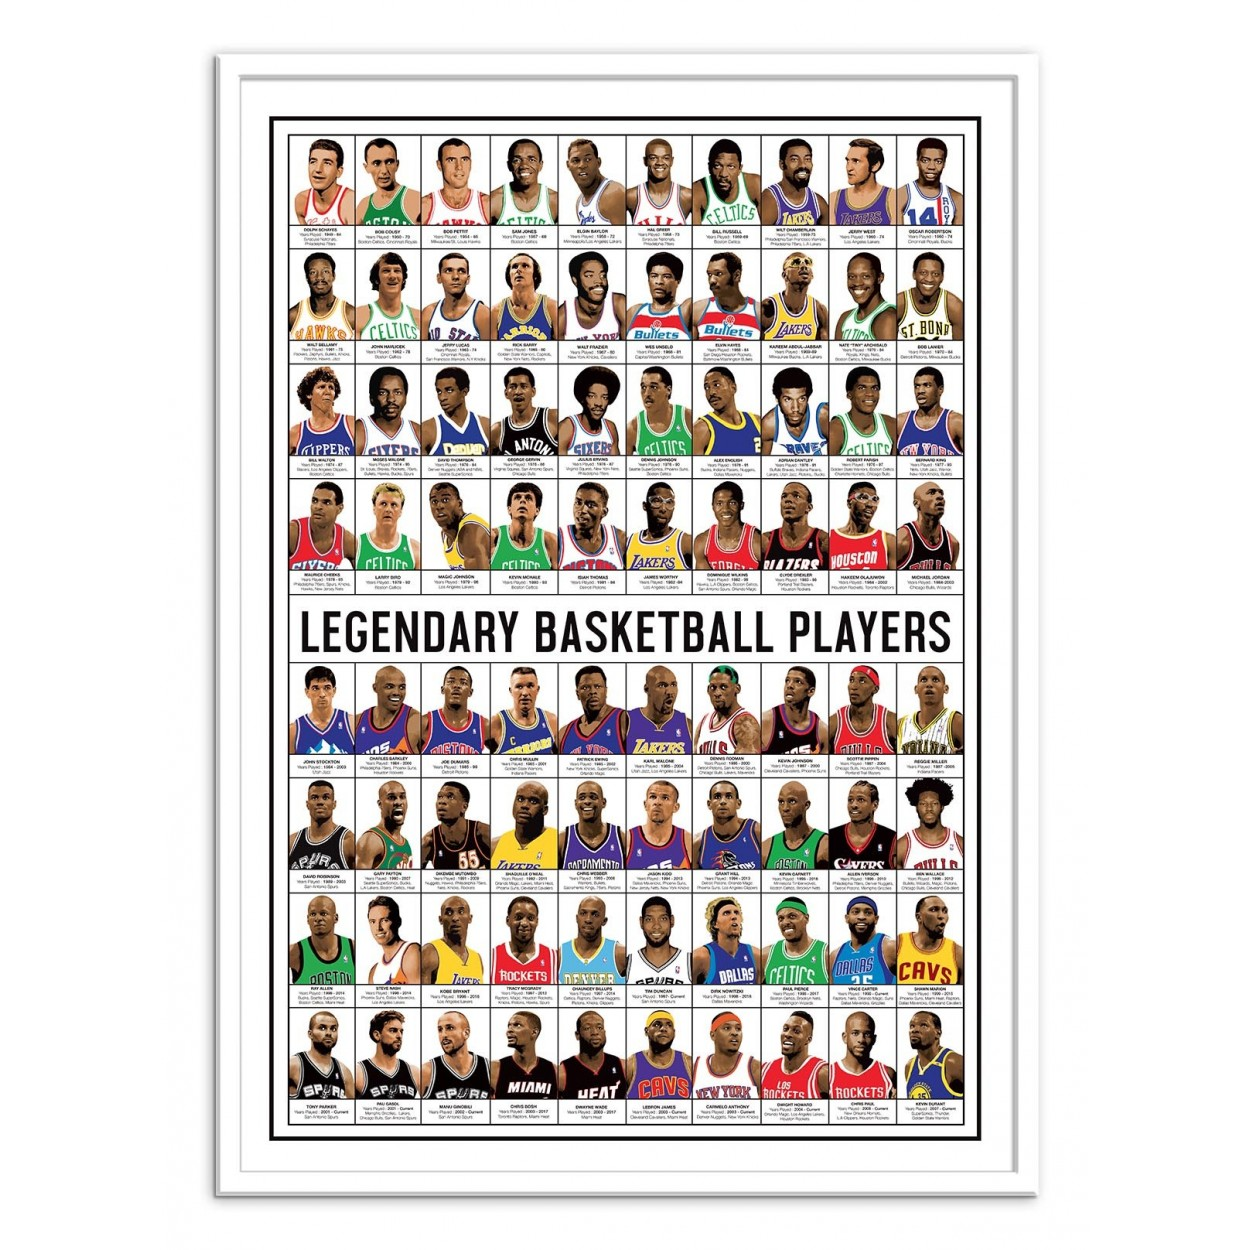 photo art poster frame and illustration of basketball stars players. Black Bedroom Furniture Sets. Home Design Ideas